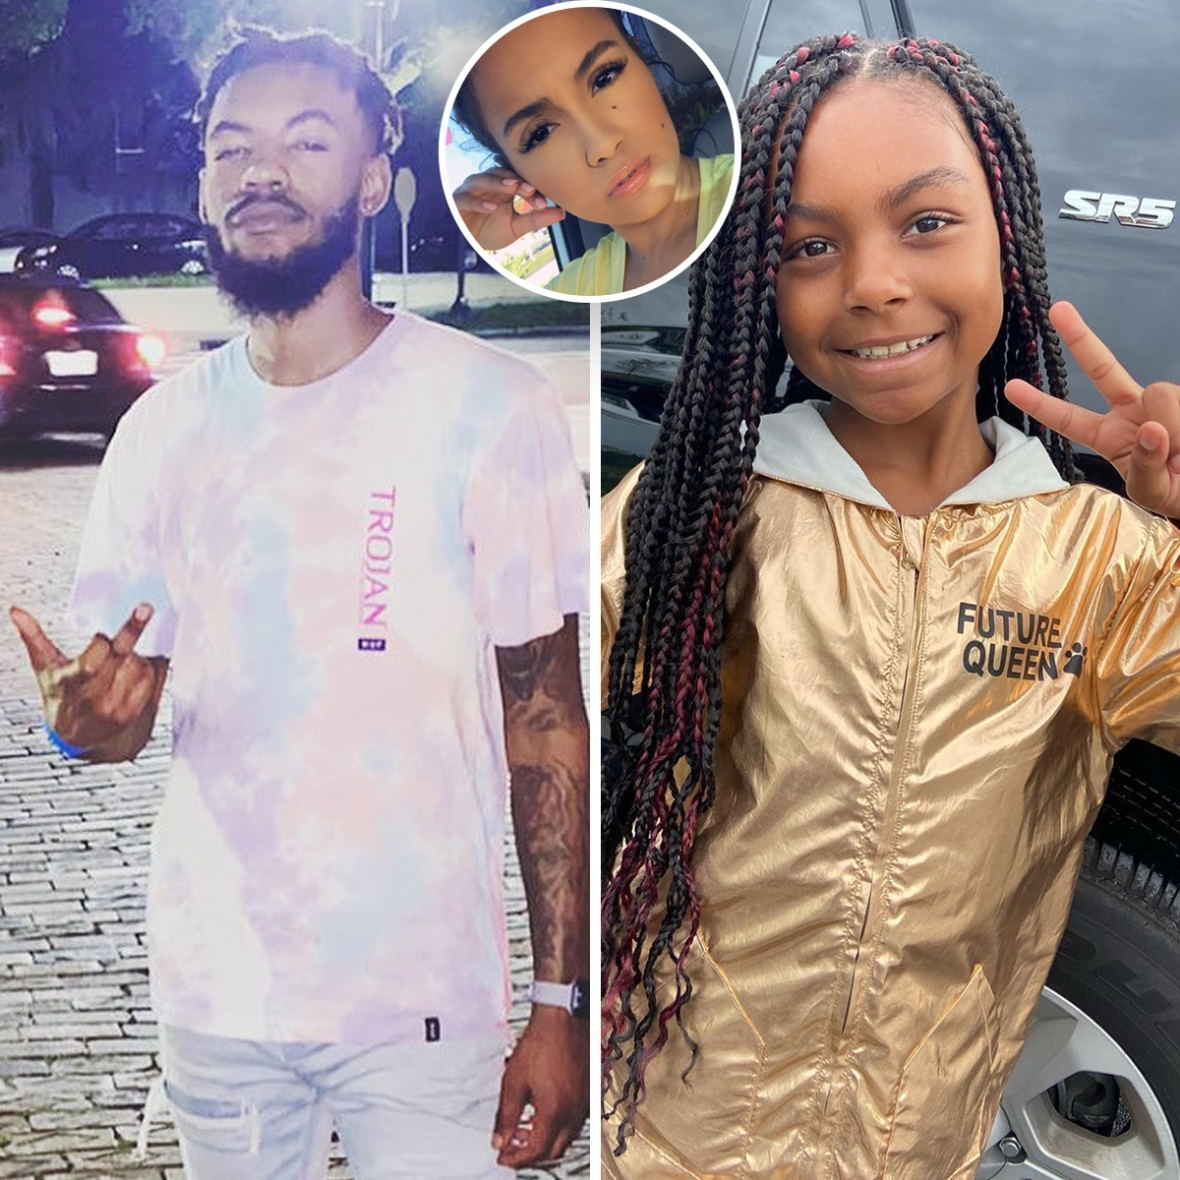 Teen Mom 2's Devoin Austin Shares Video With Daughter Nova After Ex Briana DeJesus Claimed He Doesn't Help